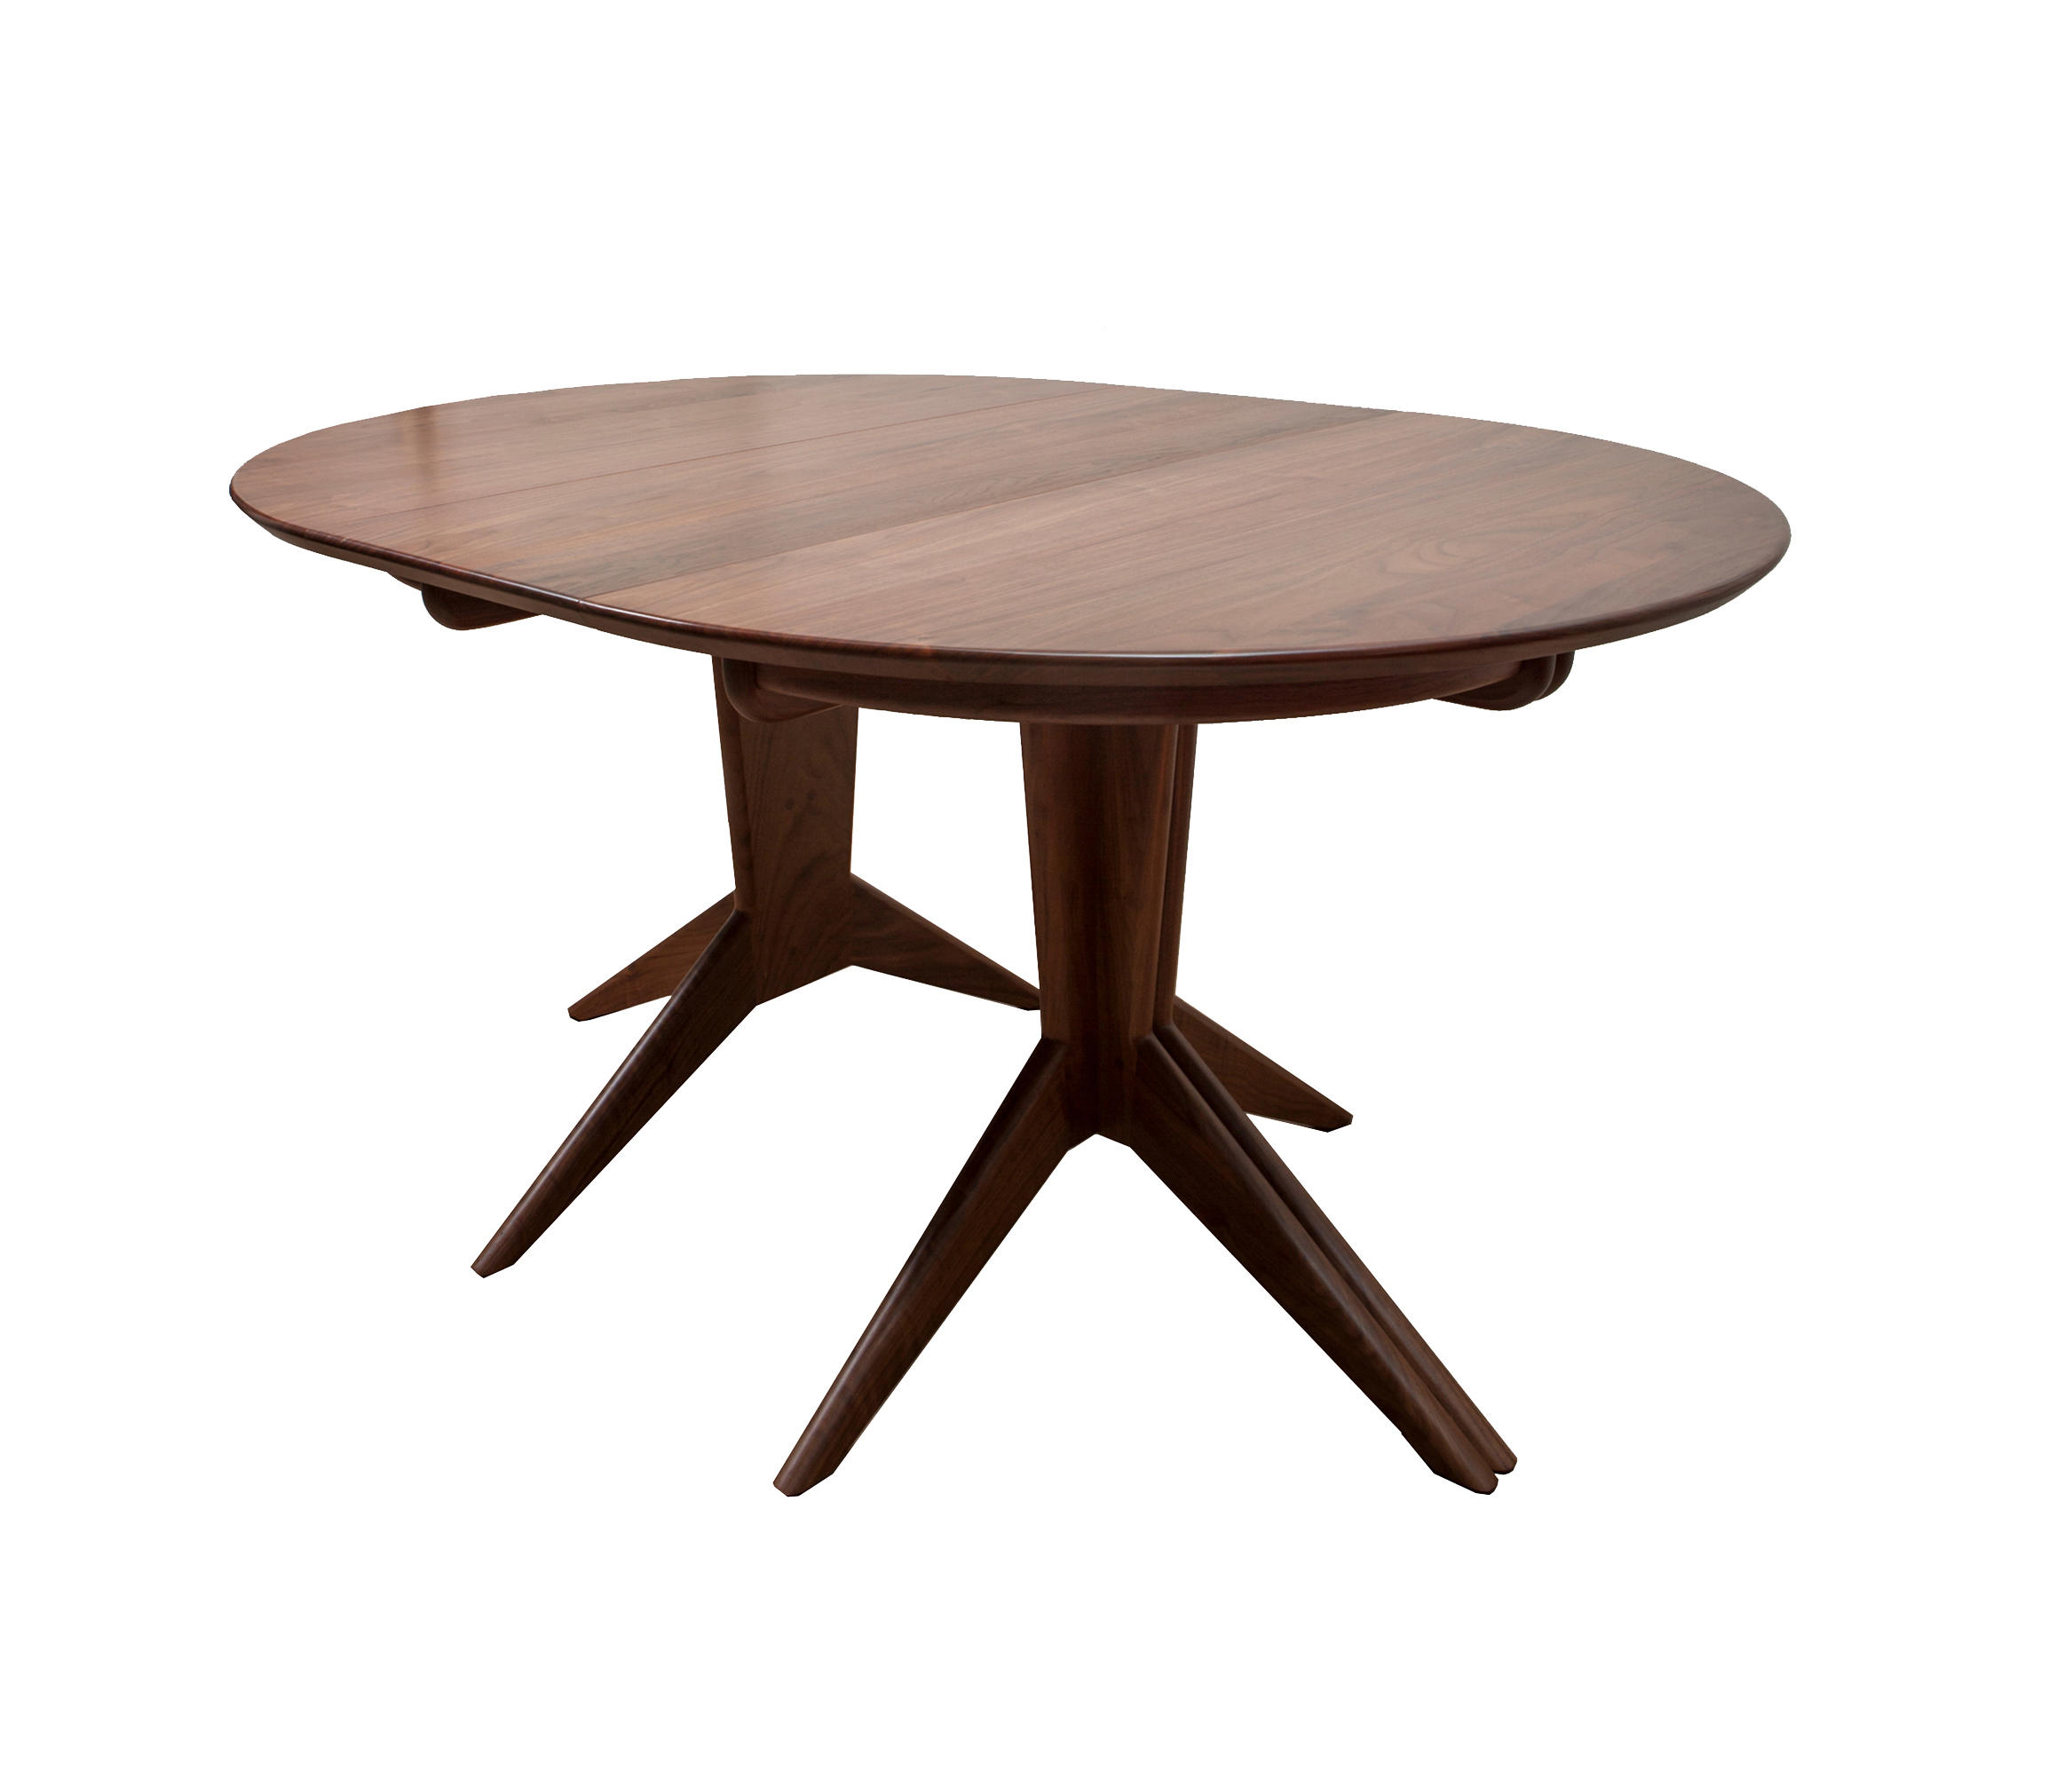 Pedestal extension dining table dining tables from for Extension dining table